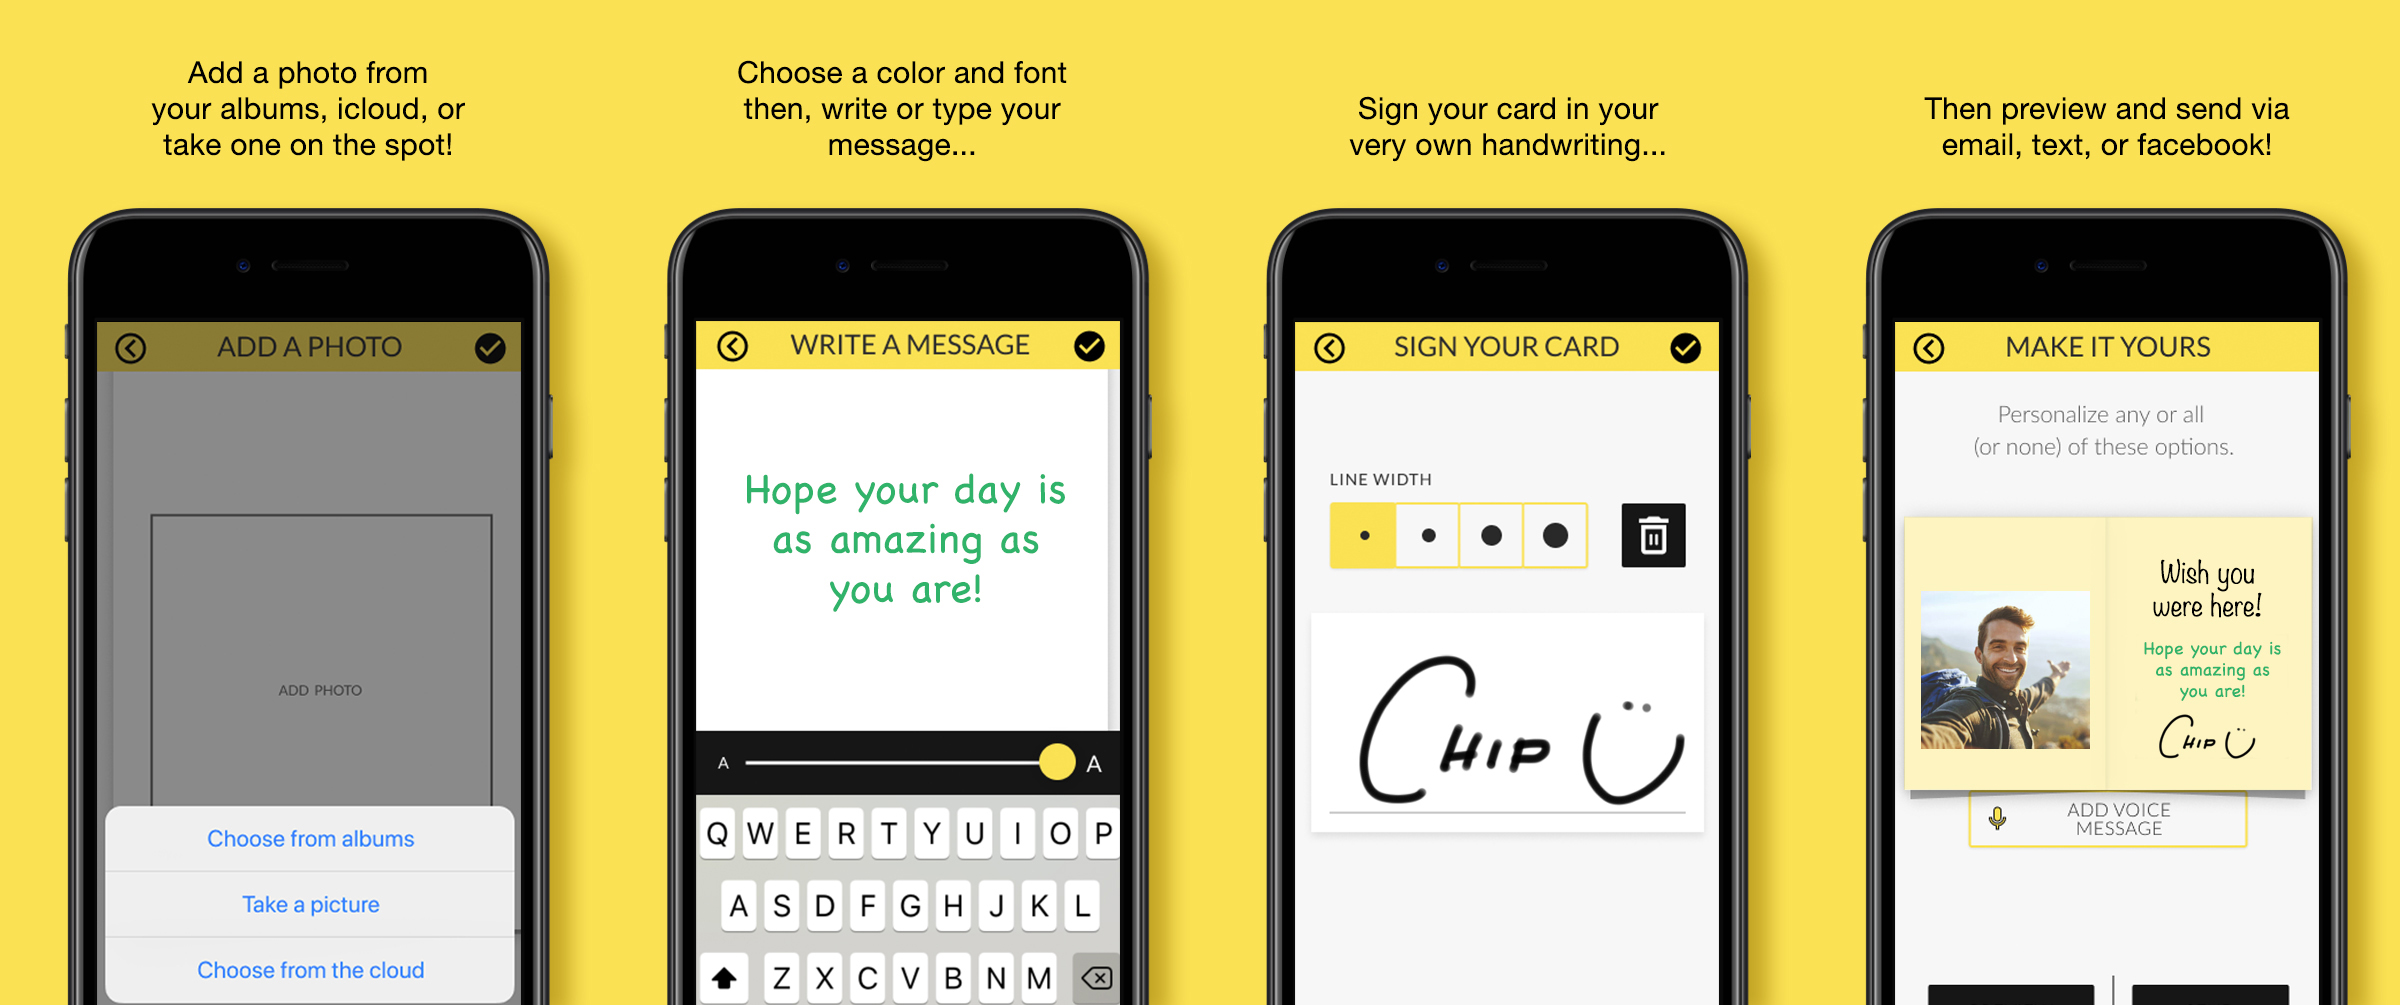 Add a photo from your albums, icloud, or take one on the spot! Choose a color and font then, write or type your message. Sign your card in your very own handwriting. Then preview and send via email, text, or facebook!